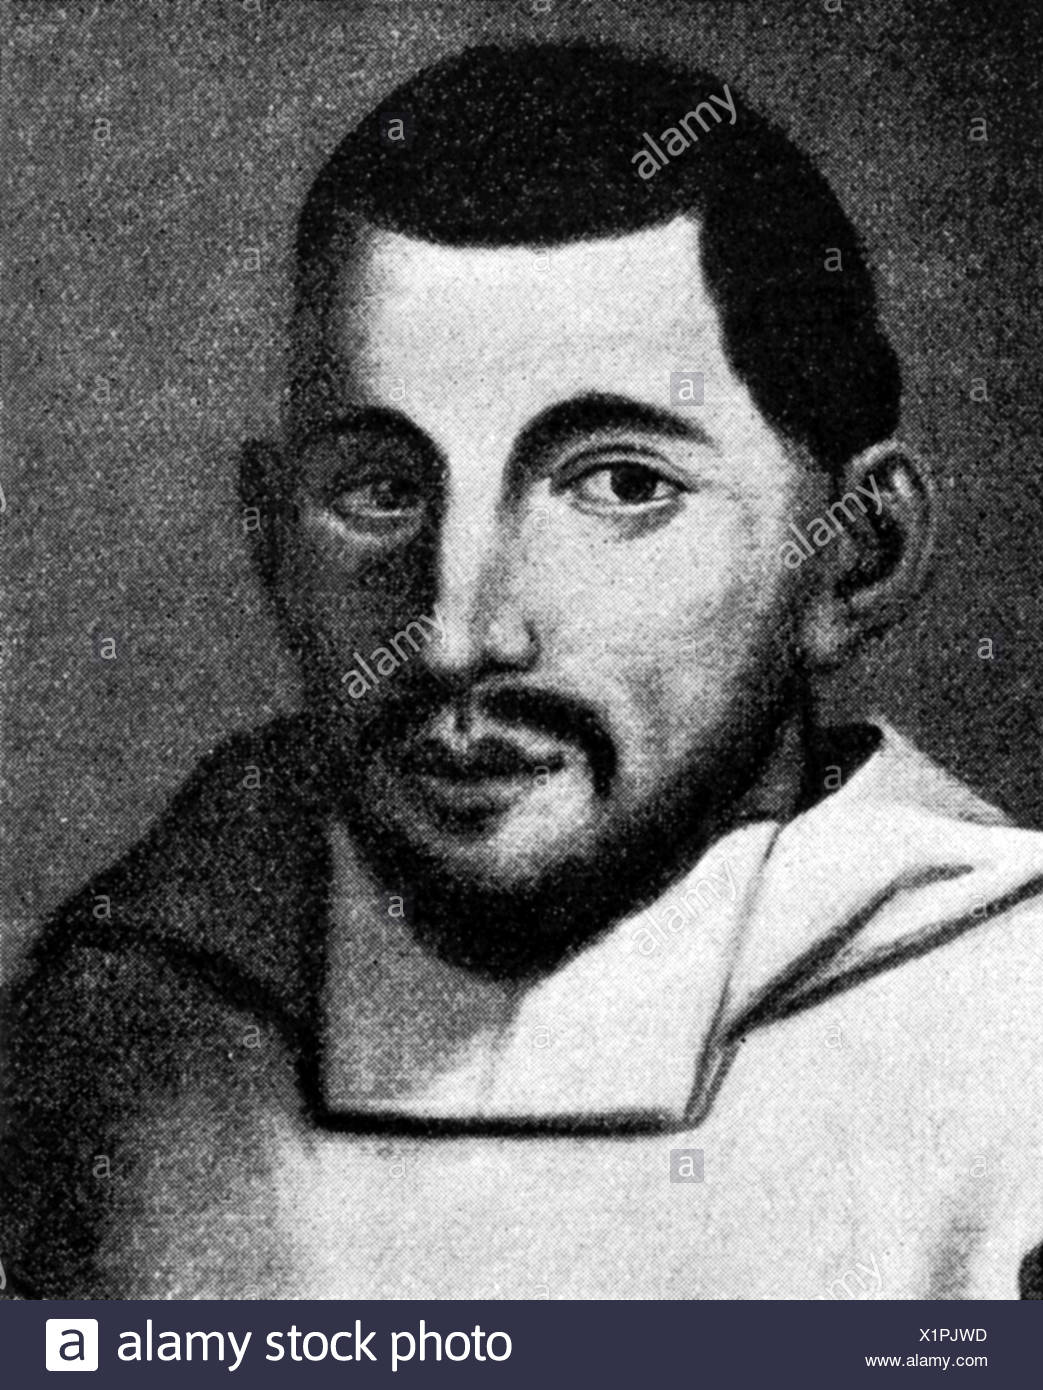 Banchieri, Adriano, 3.9.1568 - 1634, Italian musician (organist) and music theorist, portrait, after contemporary illustration, Additional-Rights-Clearances-NA - Stock Image